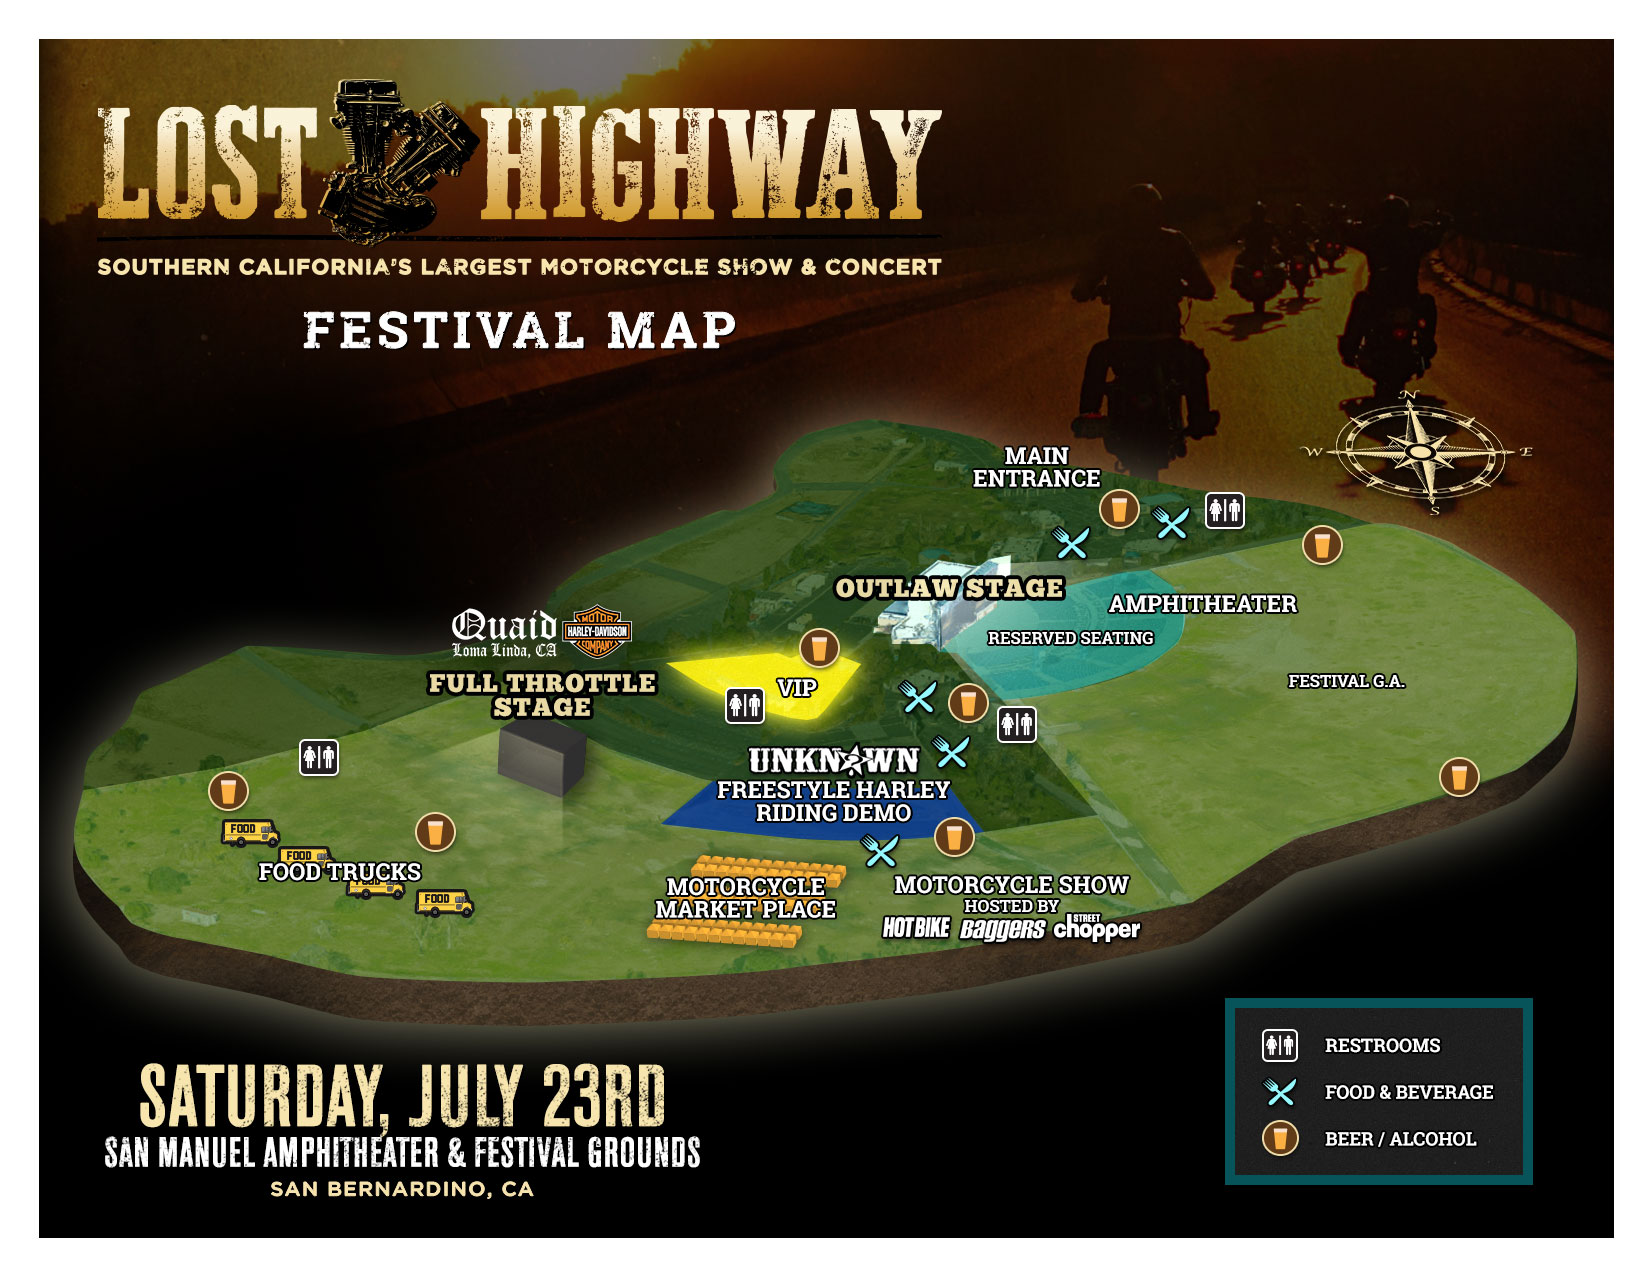 Lost Highway: ntley Gilbert, Social Distortion, Eagles Of ... on red rock amphitheater map, san manuel stadium seating chart, san manuel concerts, sandia casino amphitheater map, san manuel ampitheatre, san manuel arizona map, red hat amphitheater map, nationwide arena map, isleta amphitheater map,